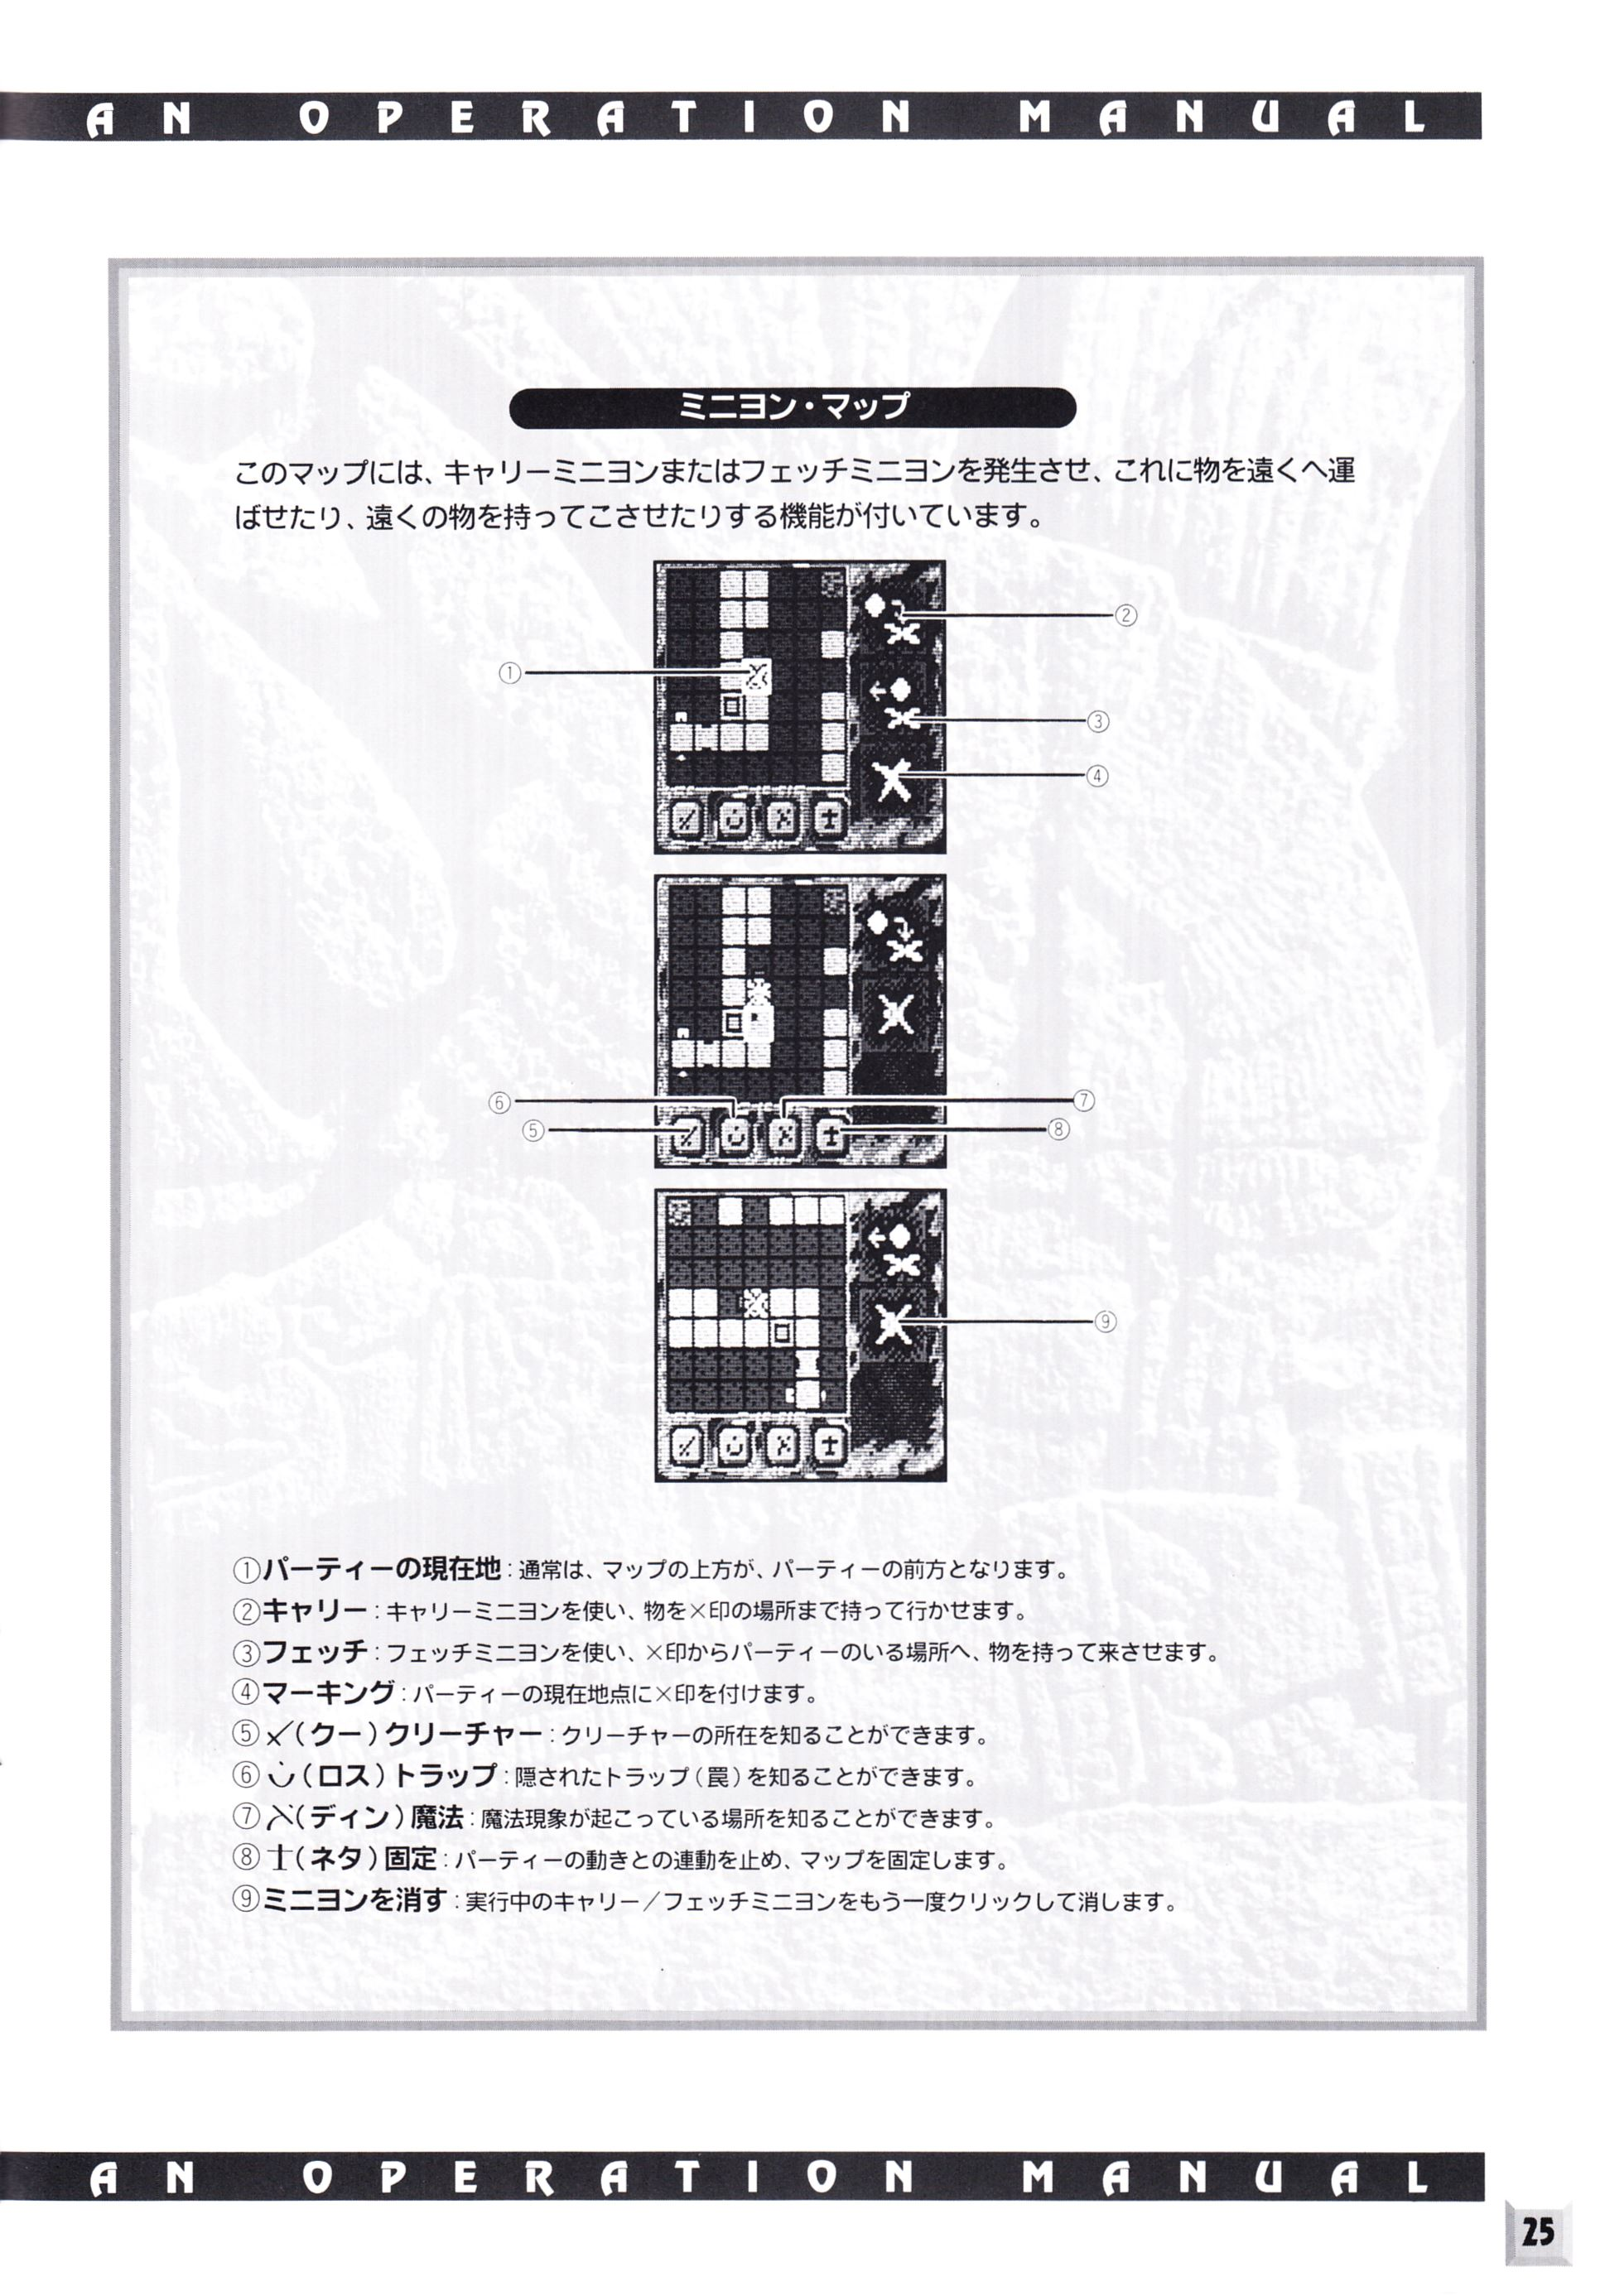 Game - Dungeon Master II - JP - PC-9821 - An Operation Manual - Page 027 - Scan